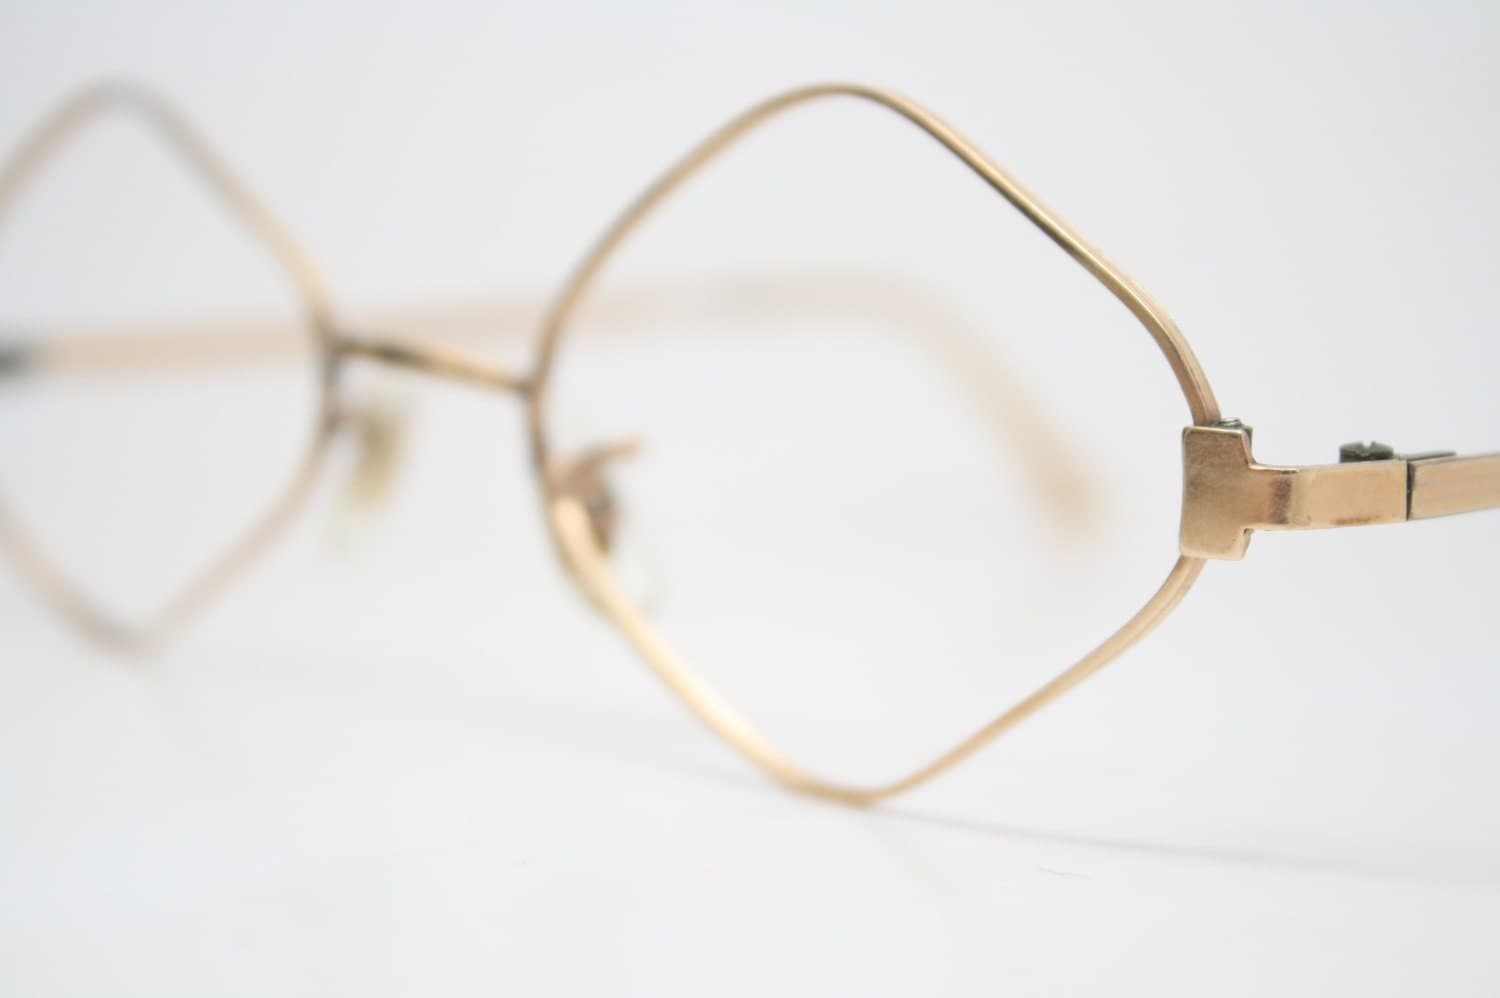 Vintage Diamond shaped Glasses Frames 1/20 12k Gold vintage